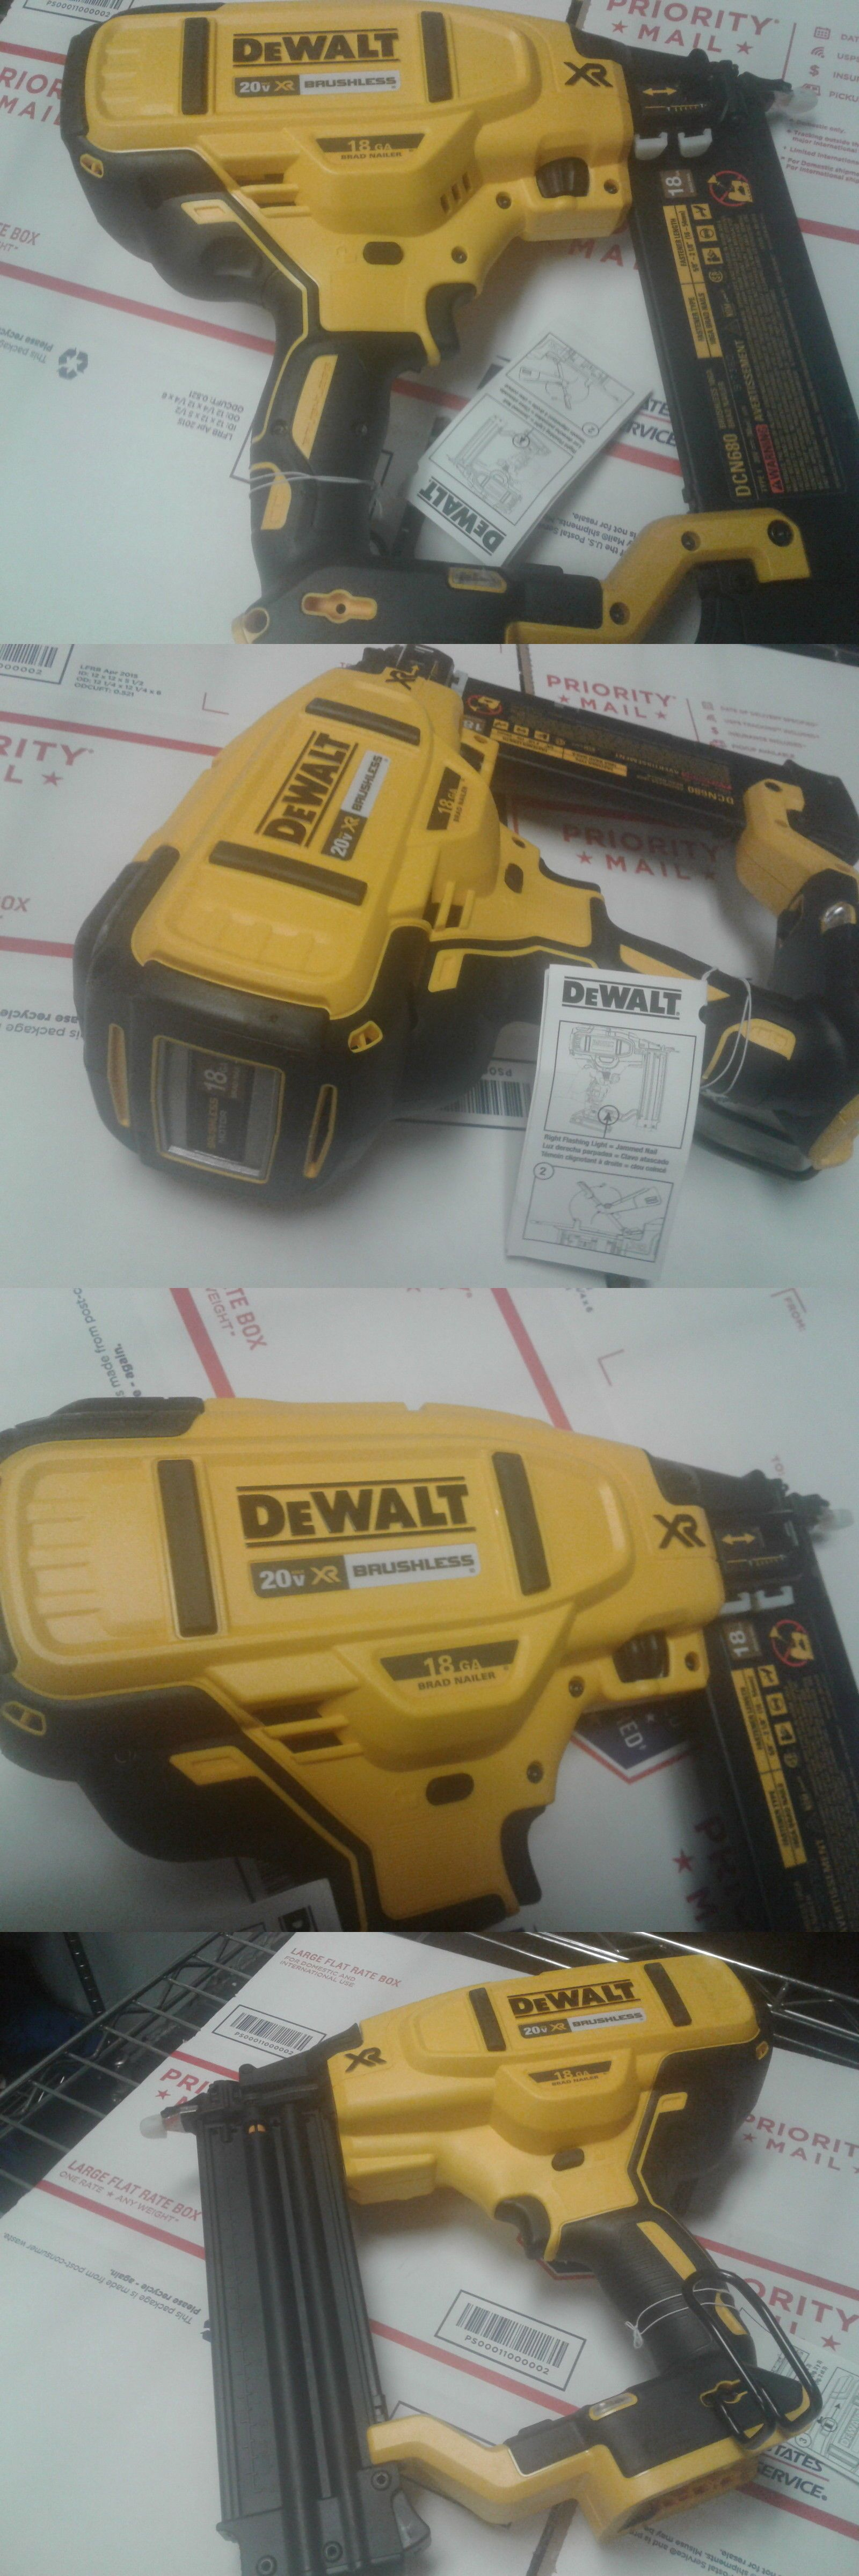 Nail And Staple Guns 122828 Dewalt Dcn680 20v Max 18 Gauge